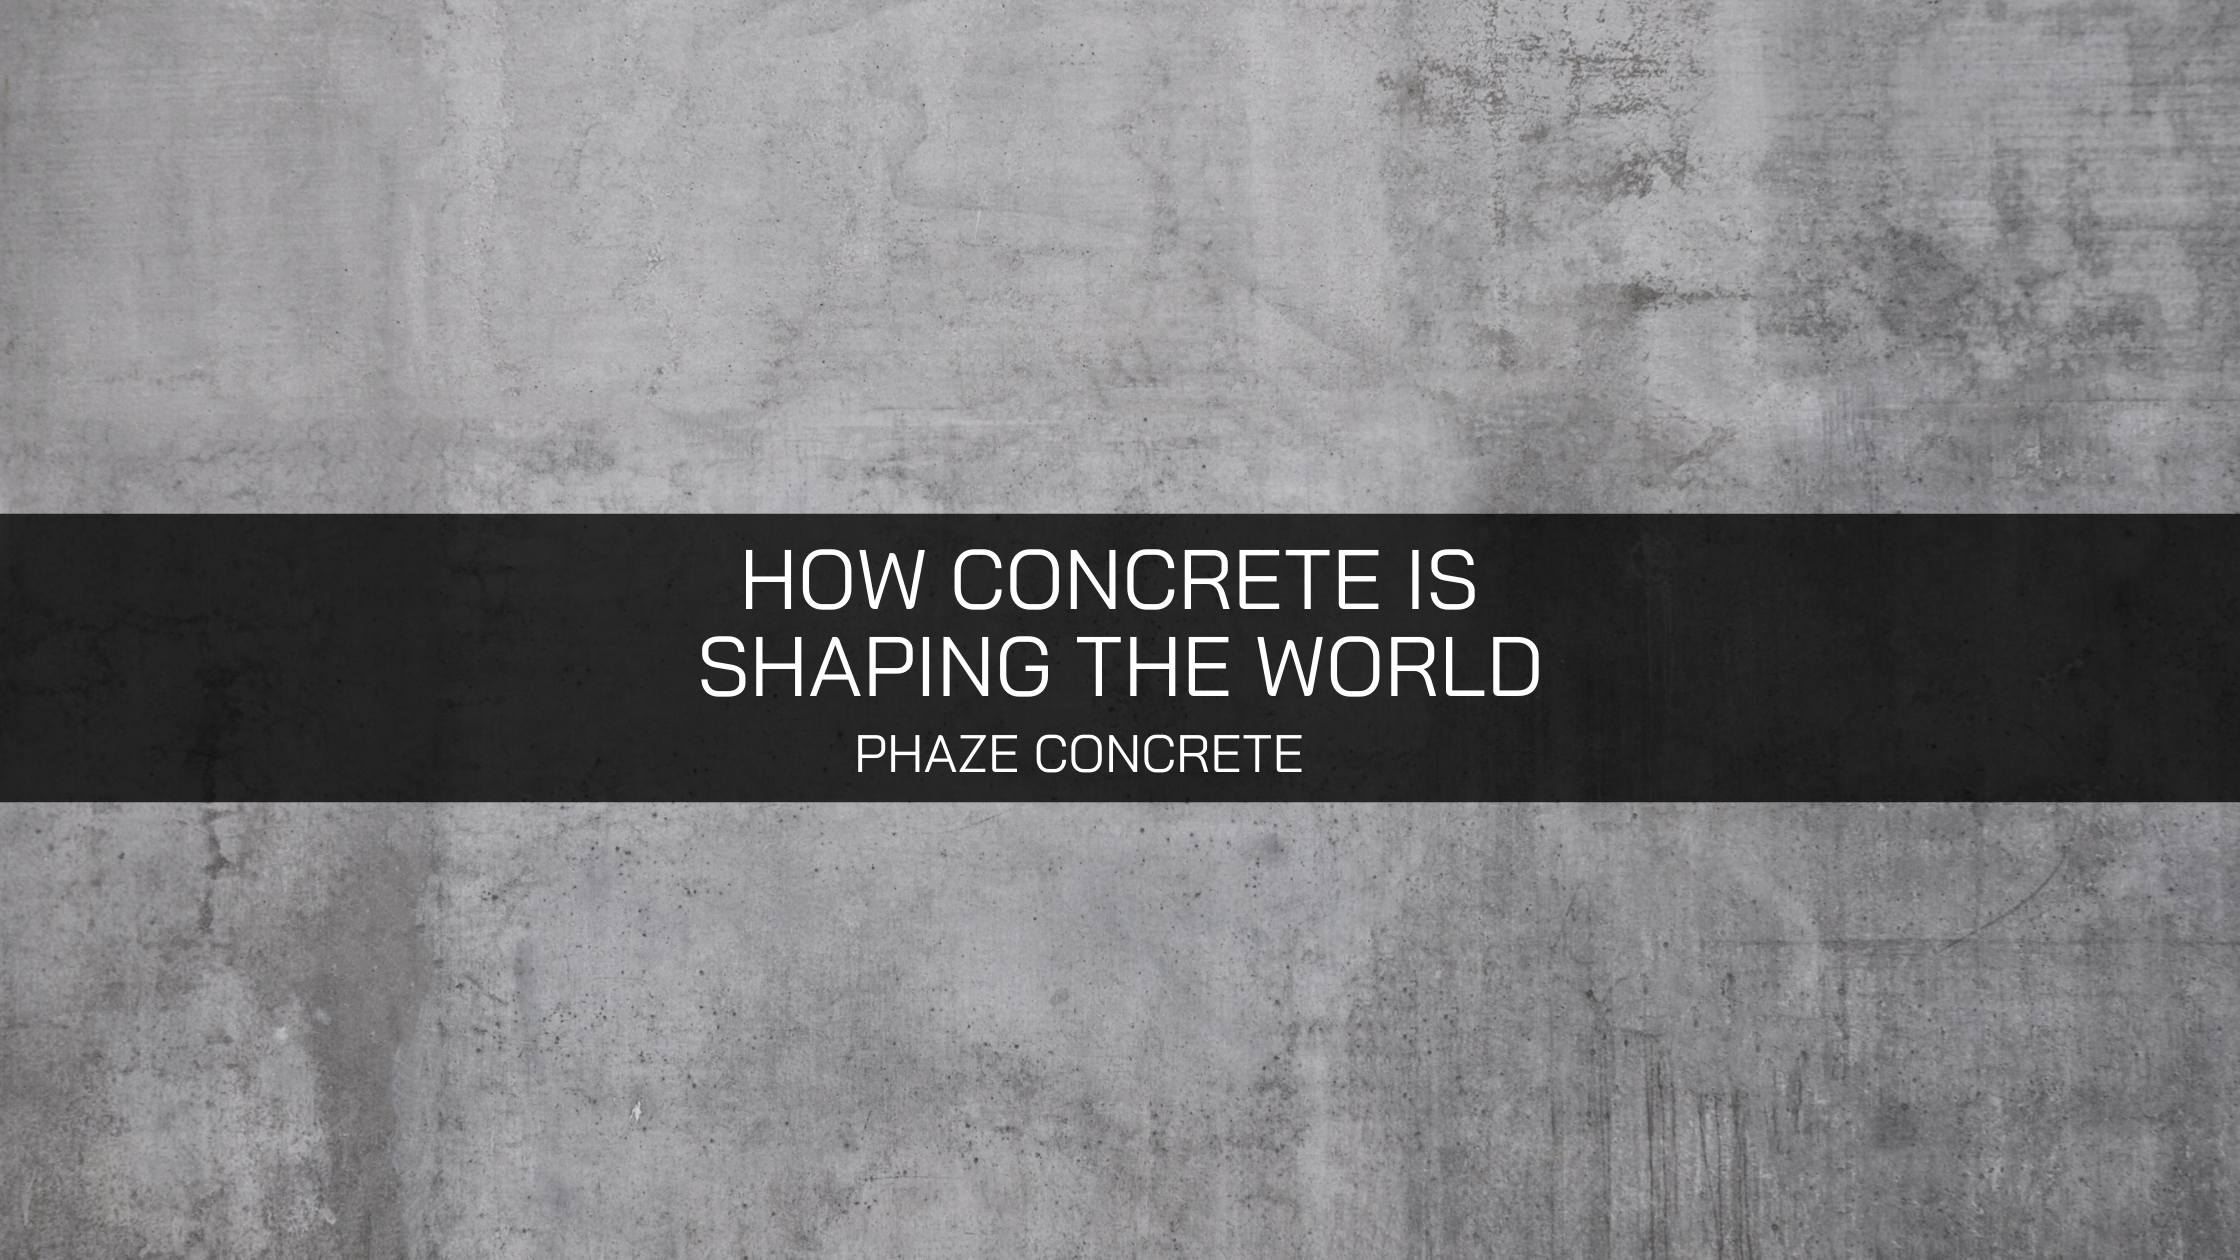 Phaze Concrete Explains How Concrete is Shaping the World